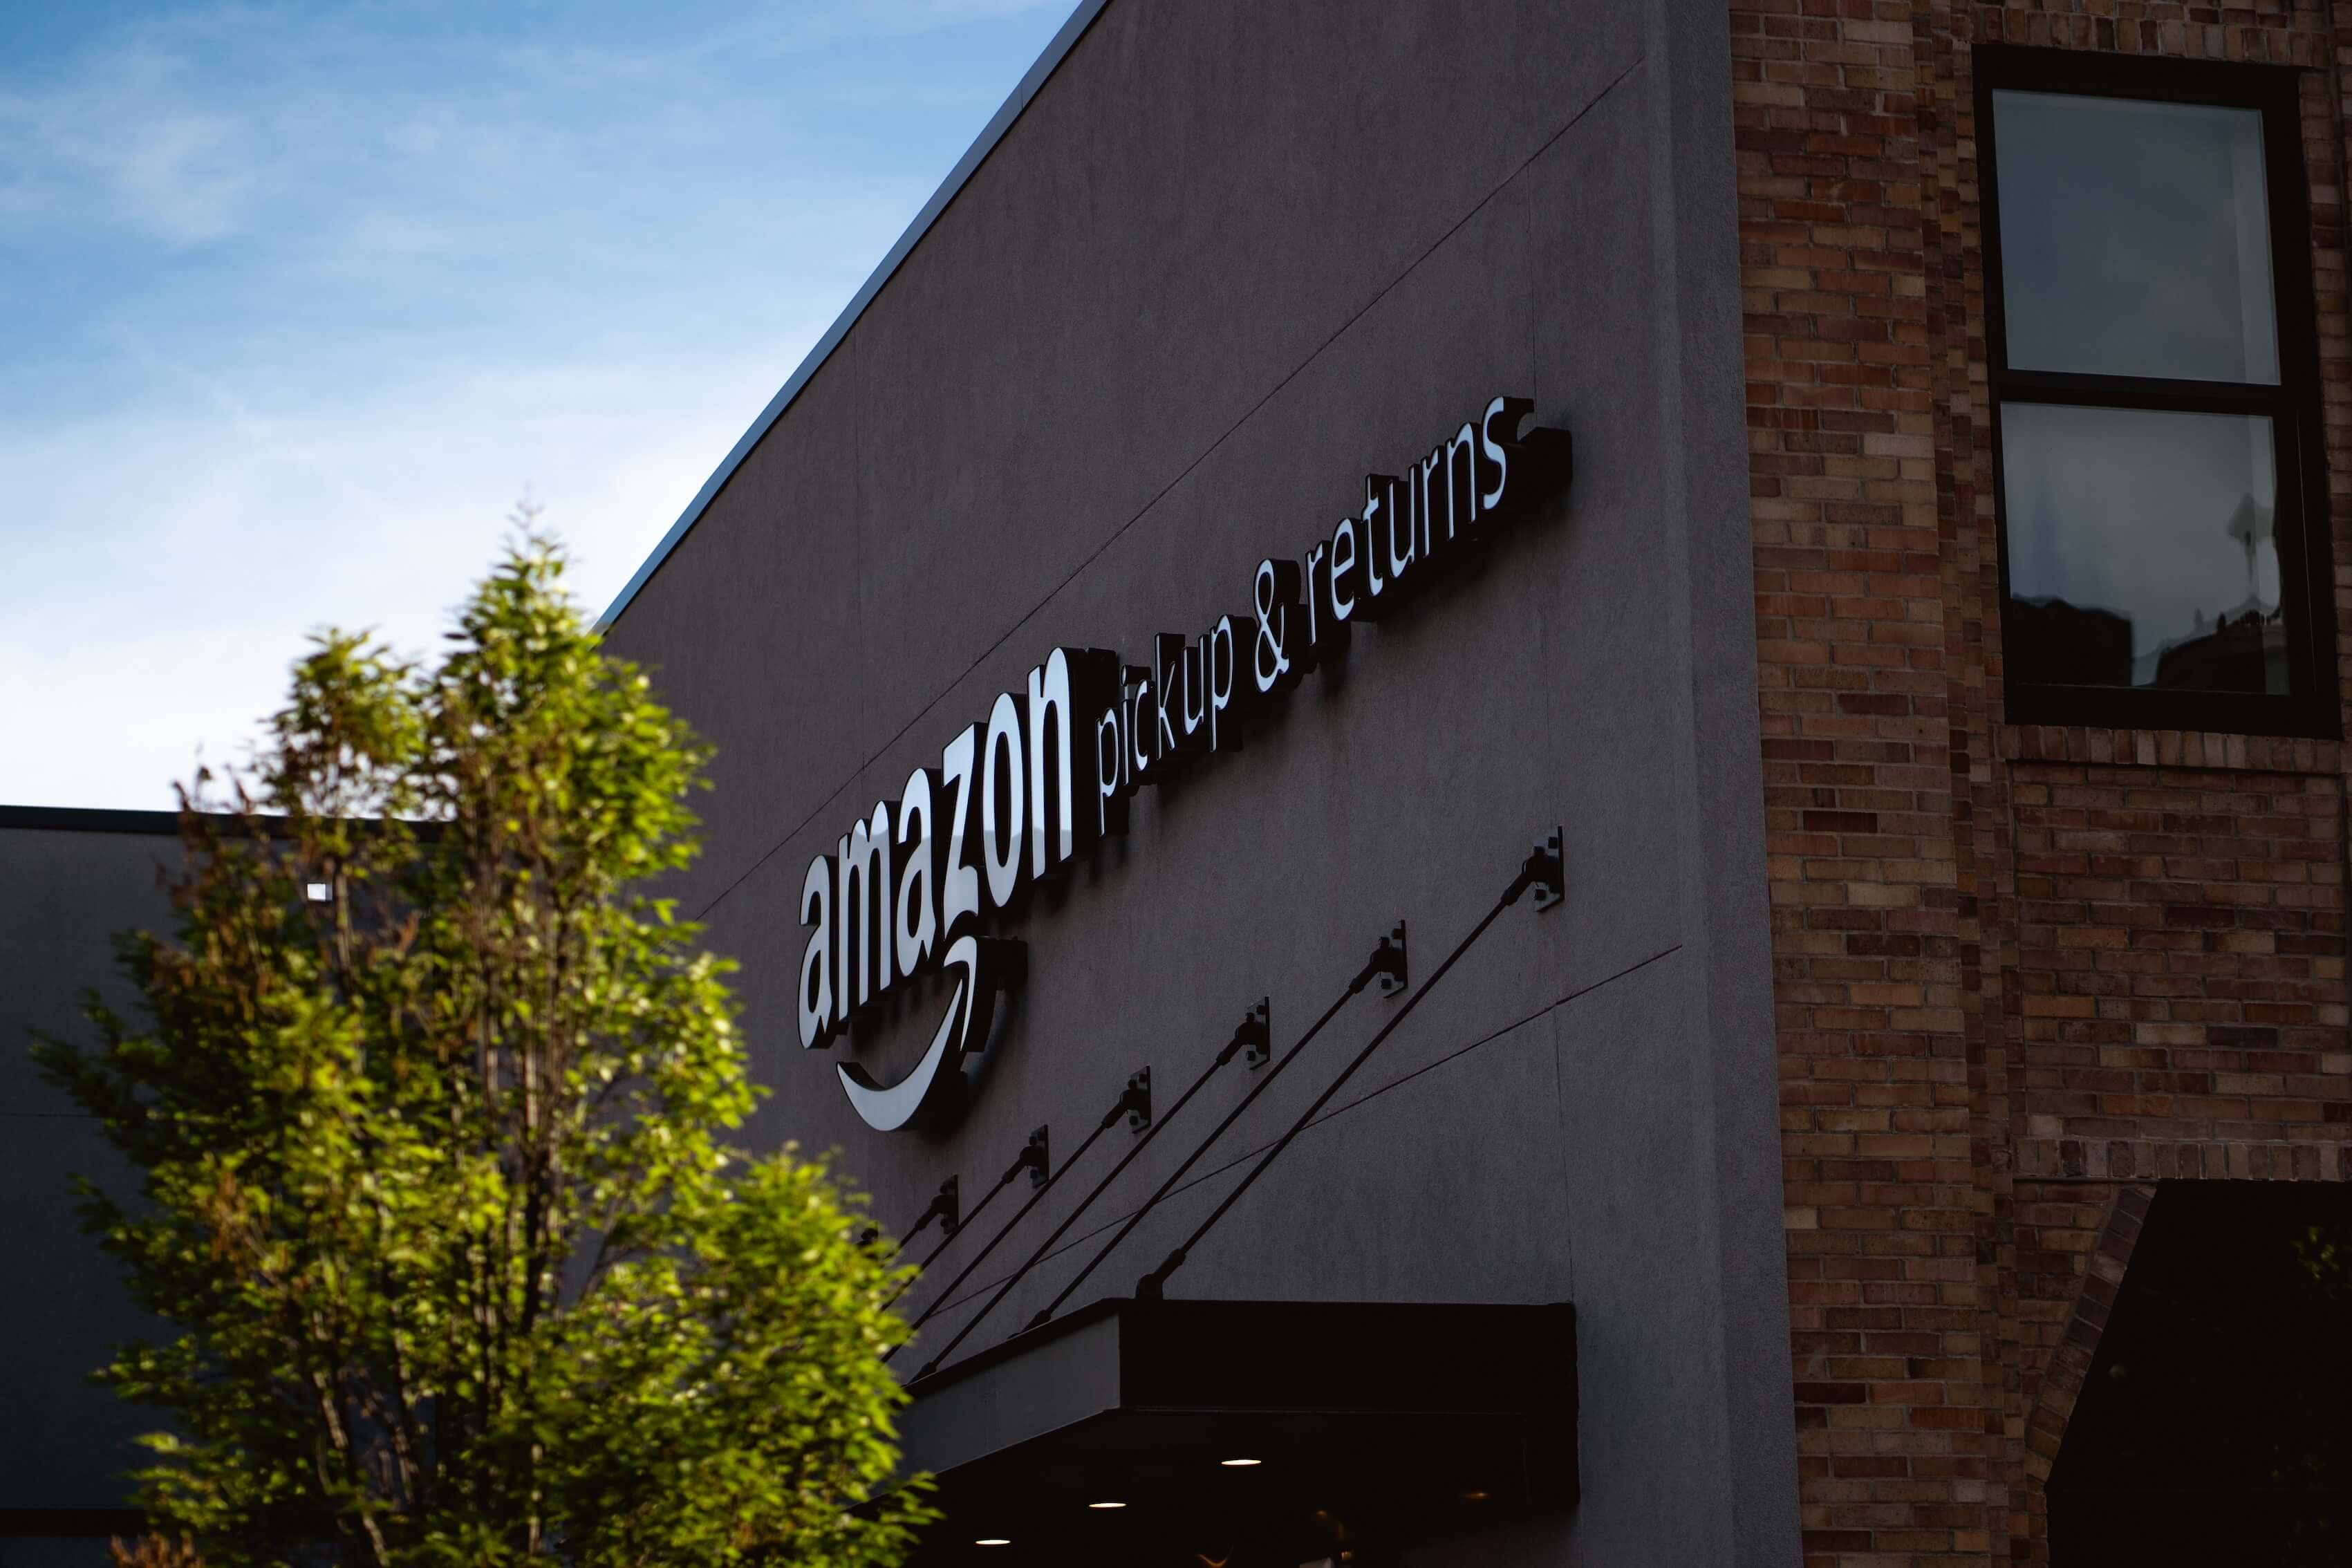 One-Day Shipping Could Boost Amazon by 45%, Analyst Says Image